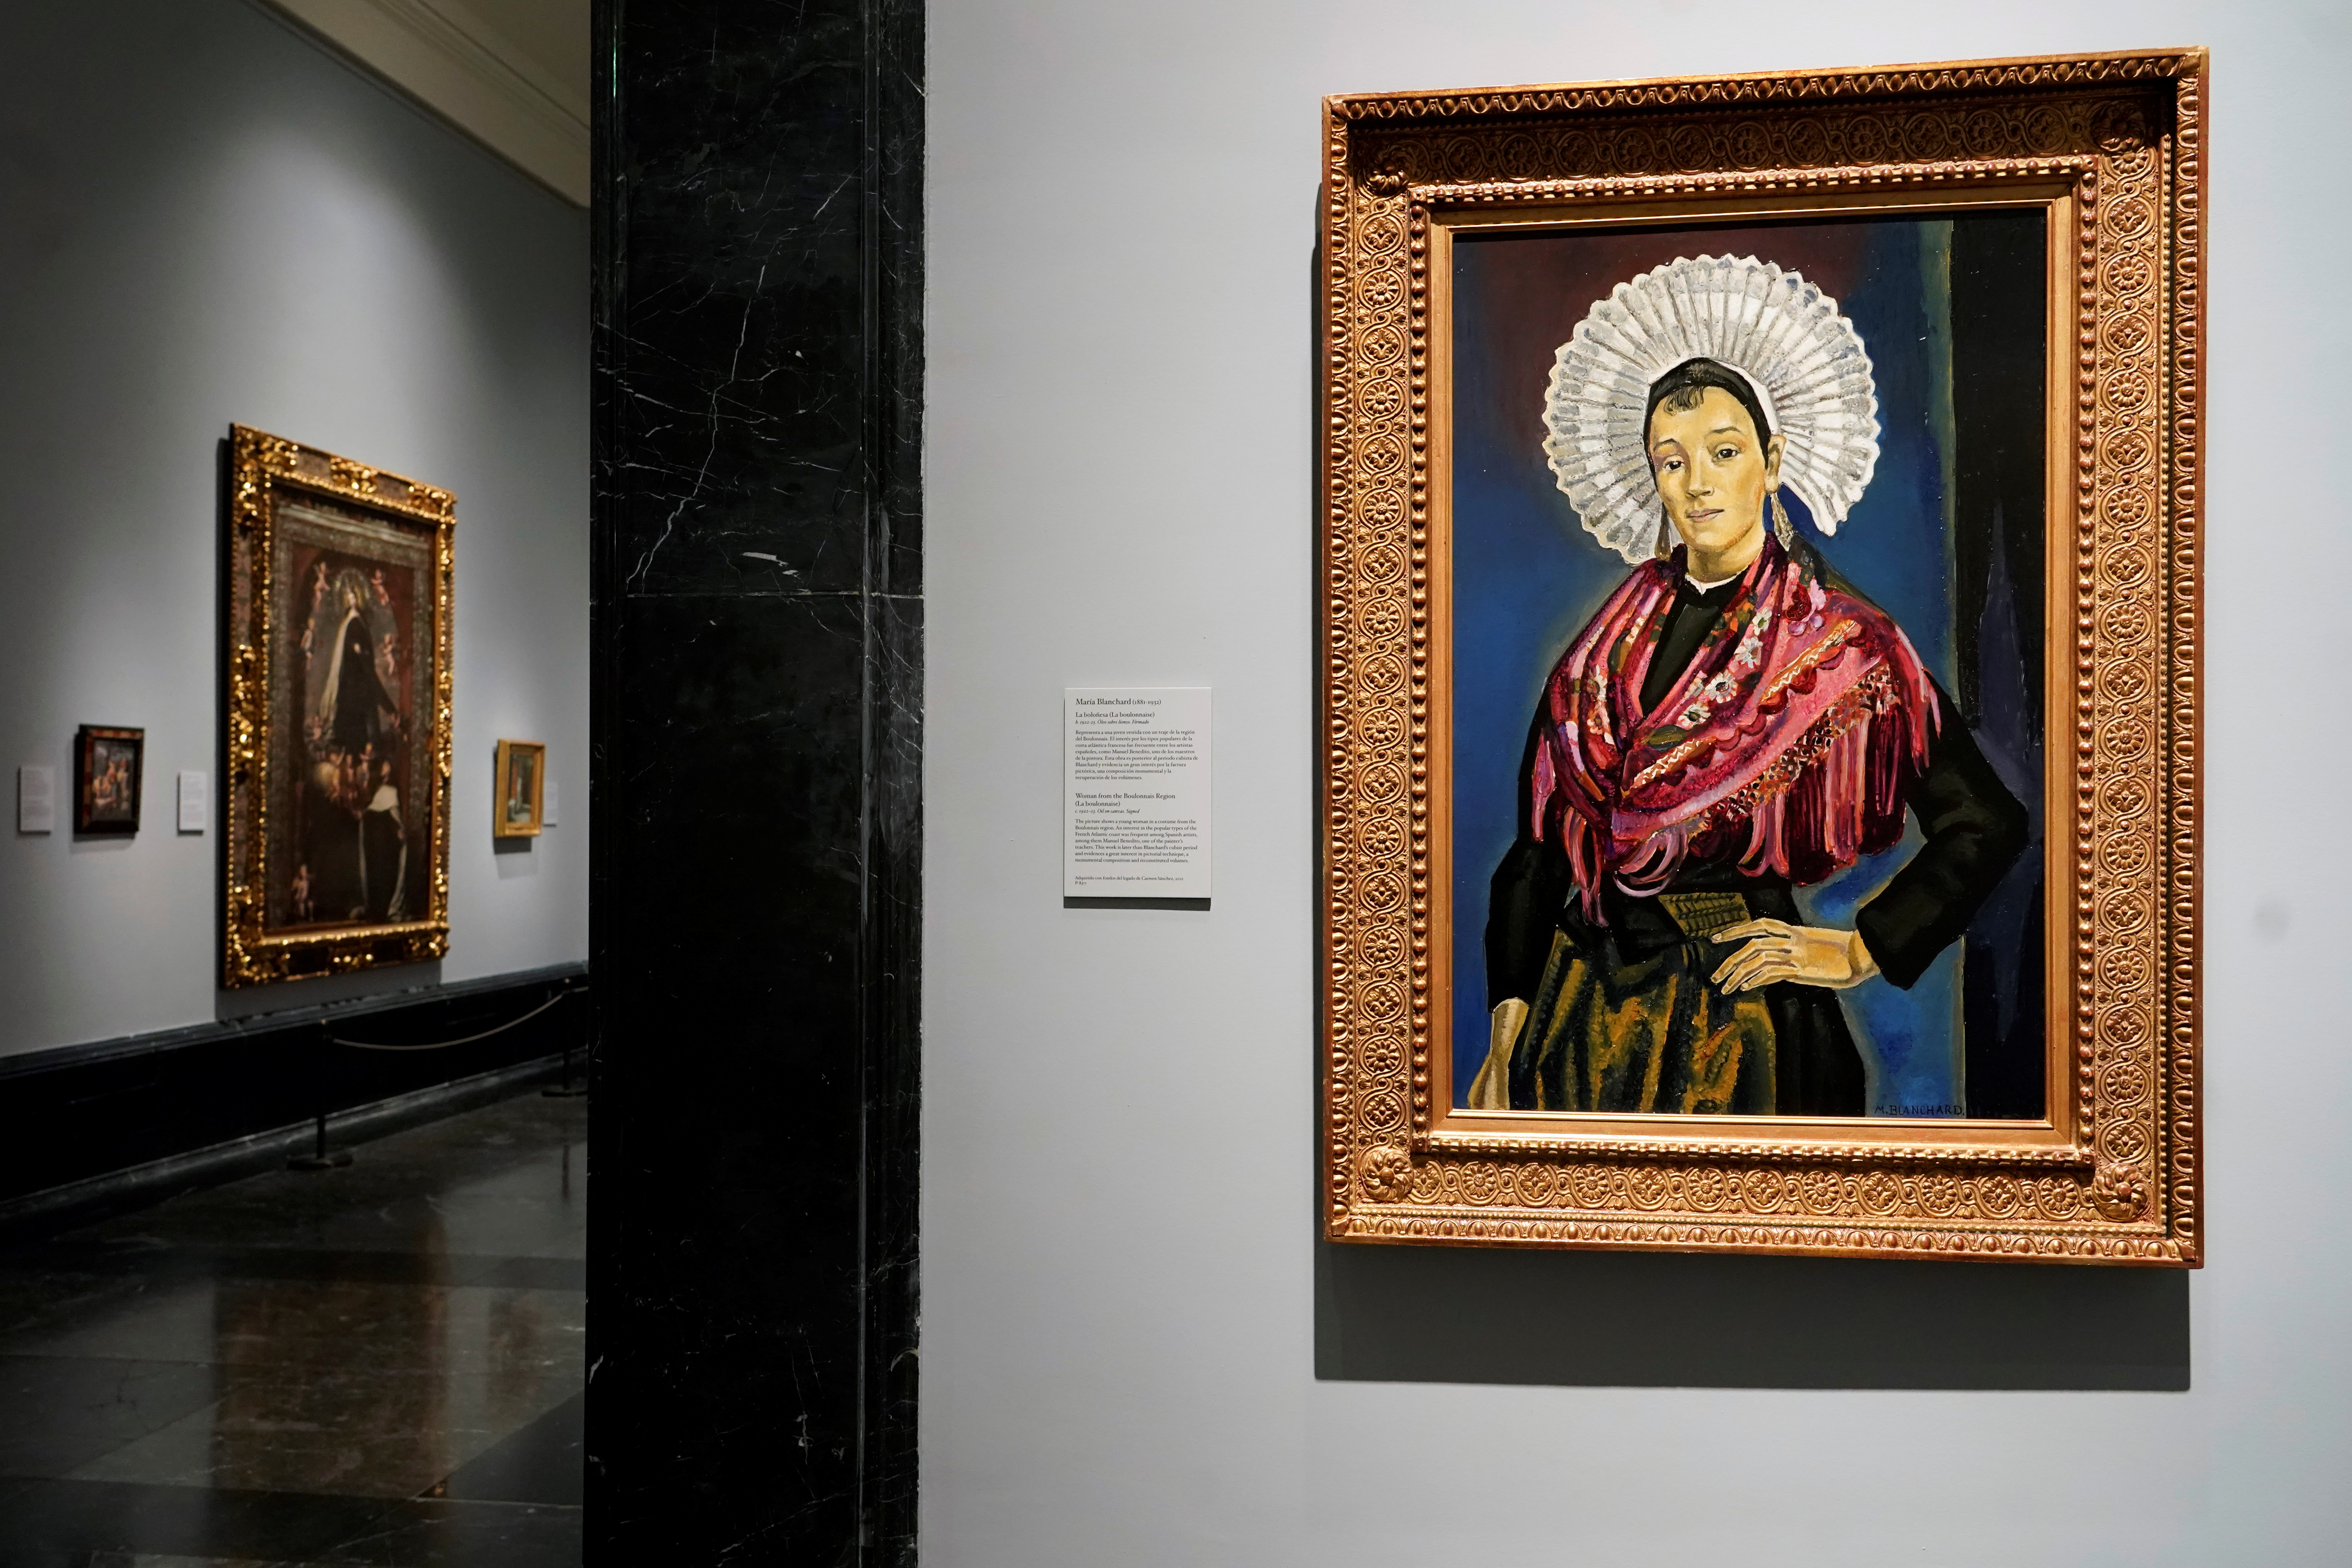 The portrait called La Bolonesa (The Bolognese) painted by Maria Blanchard is seen at El Prado Museum in Madrid, Spain July 21, 2021. REUTERS/Juan Medina NO RESALES. NO ARCHIVES